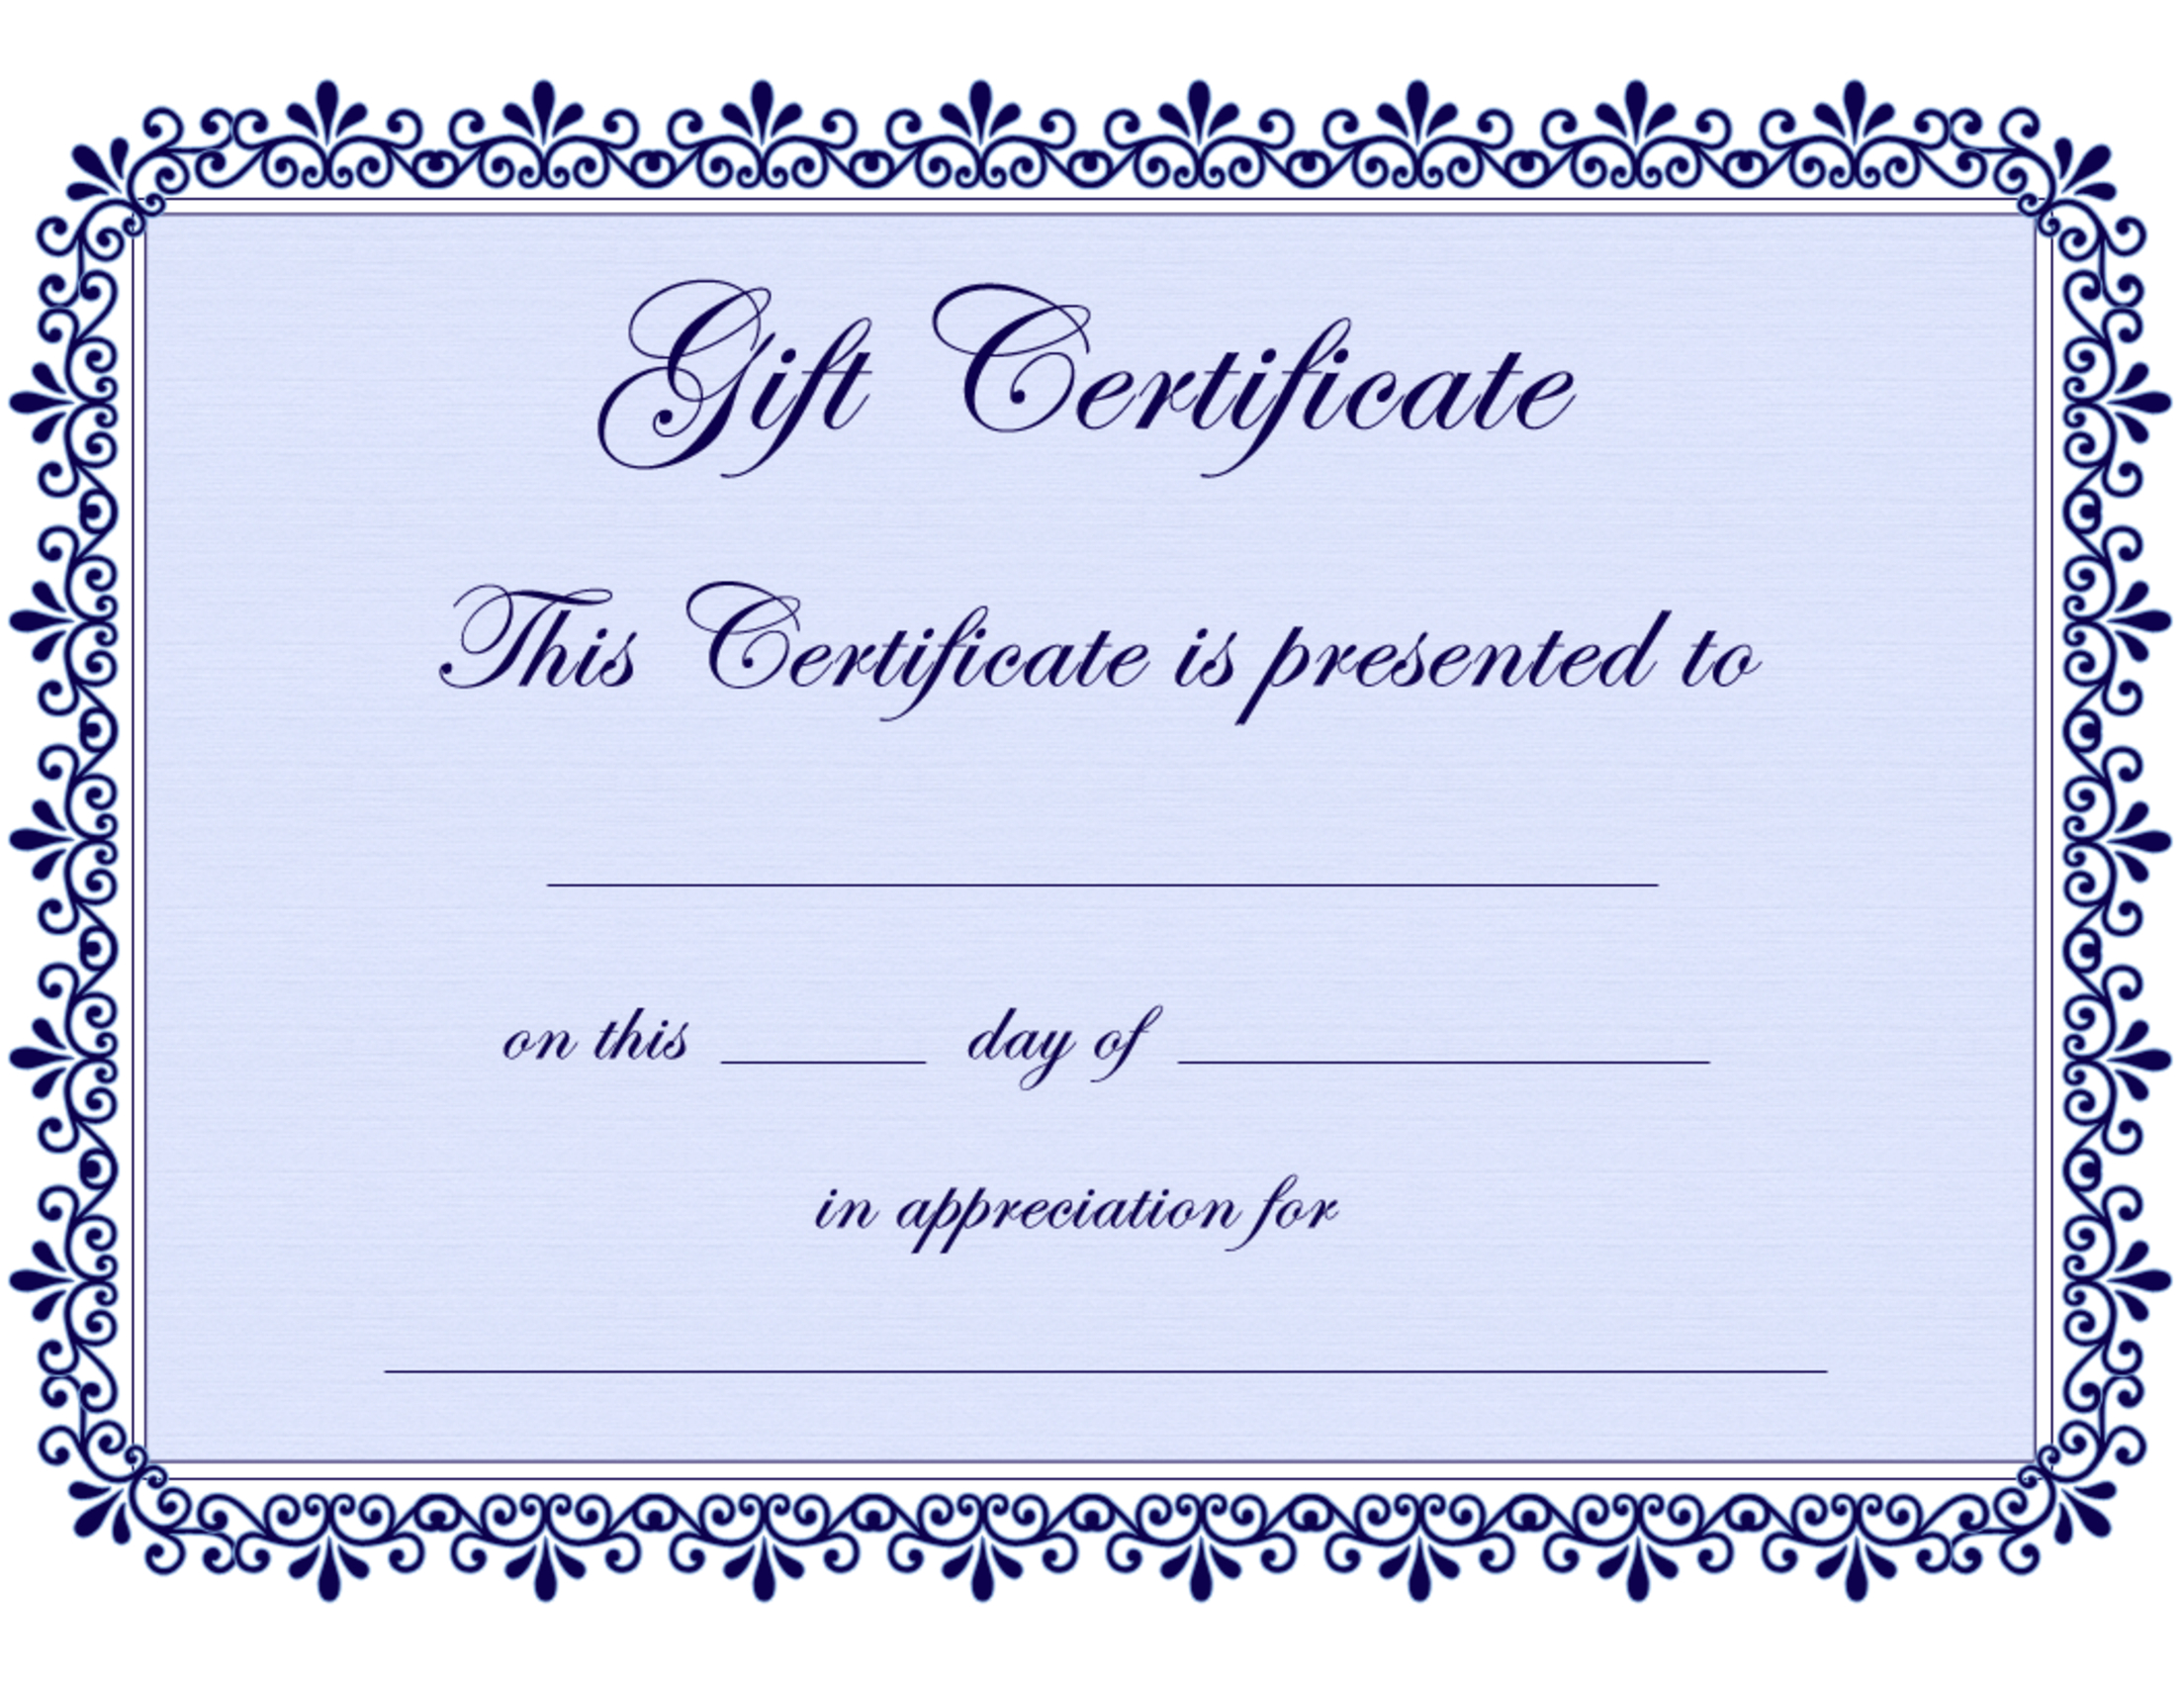 Certificate Templates   Gift Certificate Template Free - Pdf - Commitment Certificate Free Printable